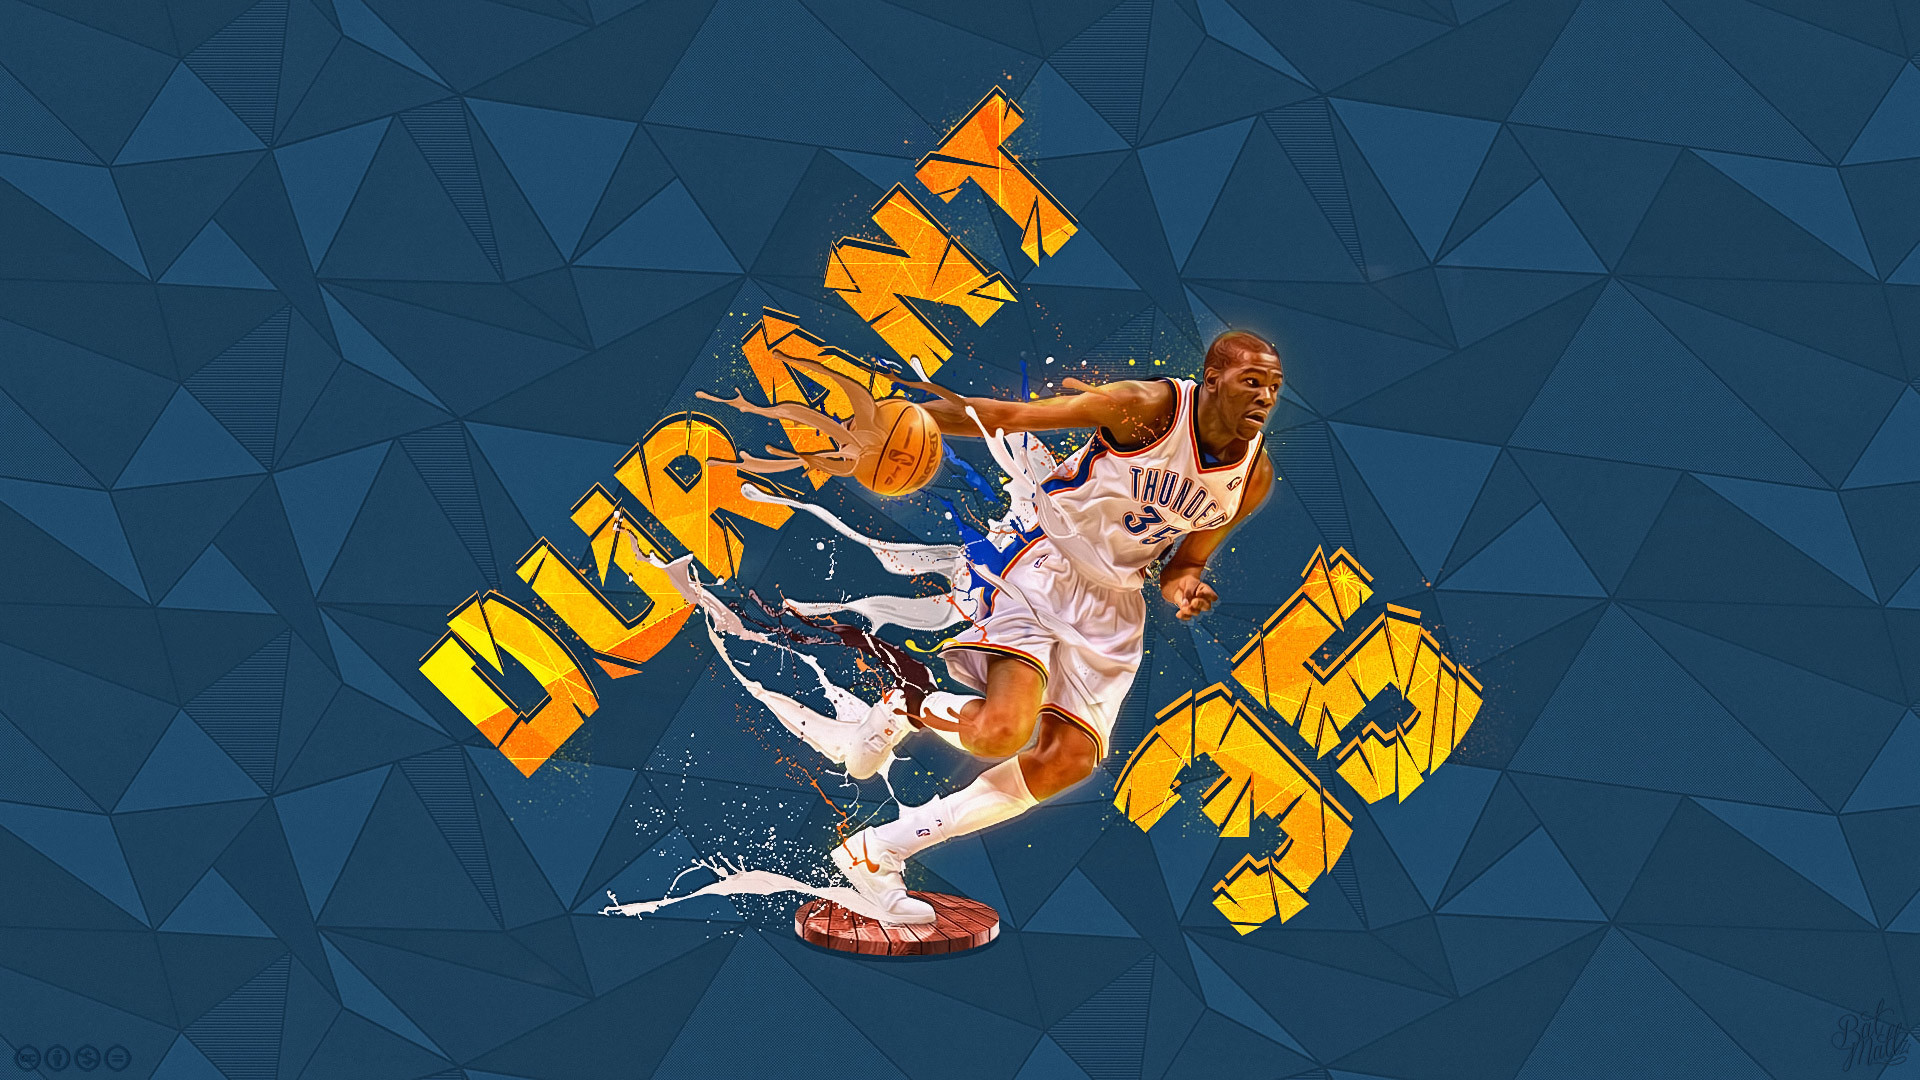 Kevin Durant Logo Wallpapers: Cool Basketball Wallpapers For IPhone (60+ Images